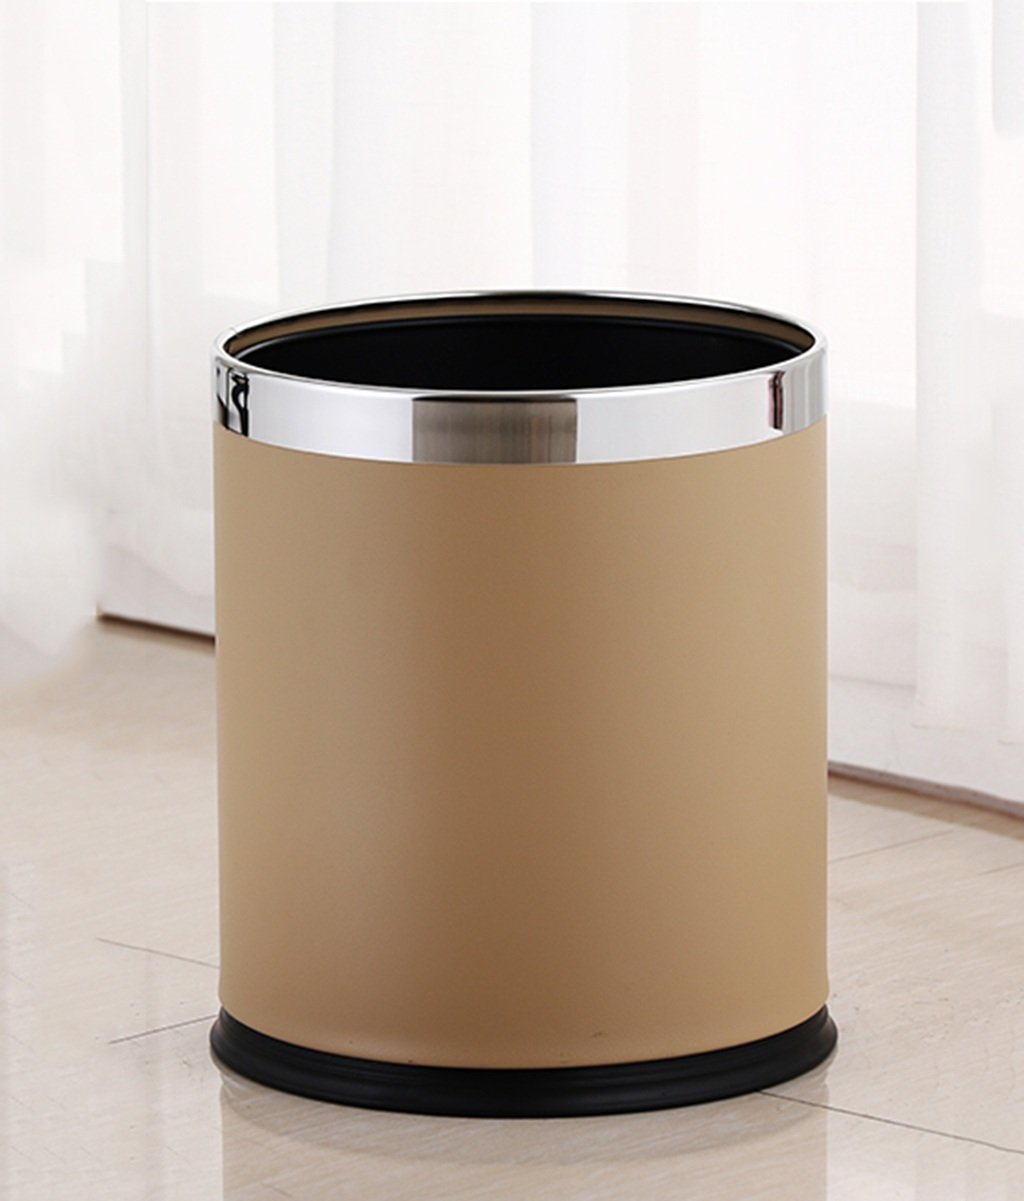 CSQ Bedroom Trash Can, Double Layer Creative Household Without Cover Metal Trash Can Leather KTV Fire Retardant Hotel Upscale Hotel Trash Can 10L (Color : Yellow)